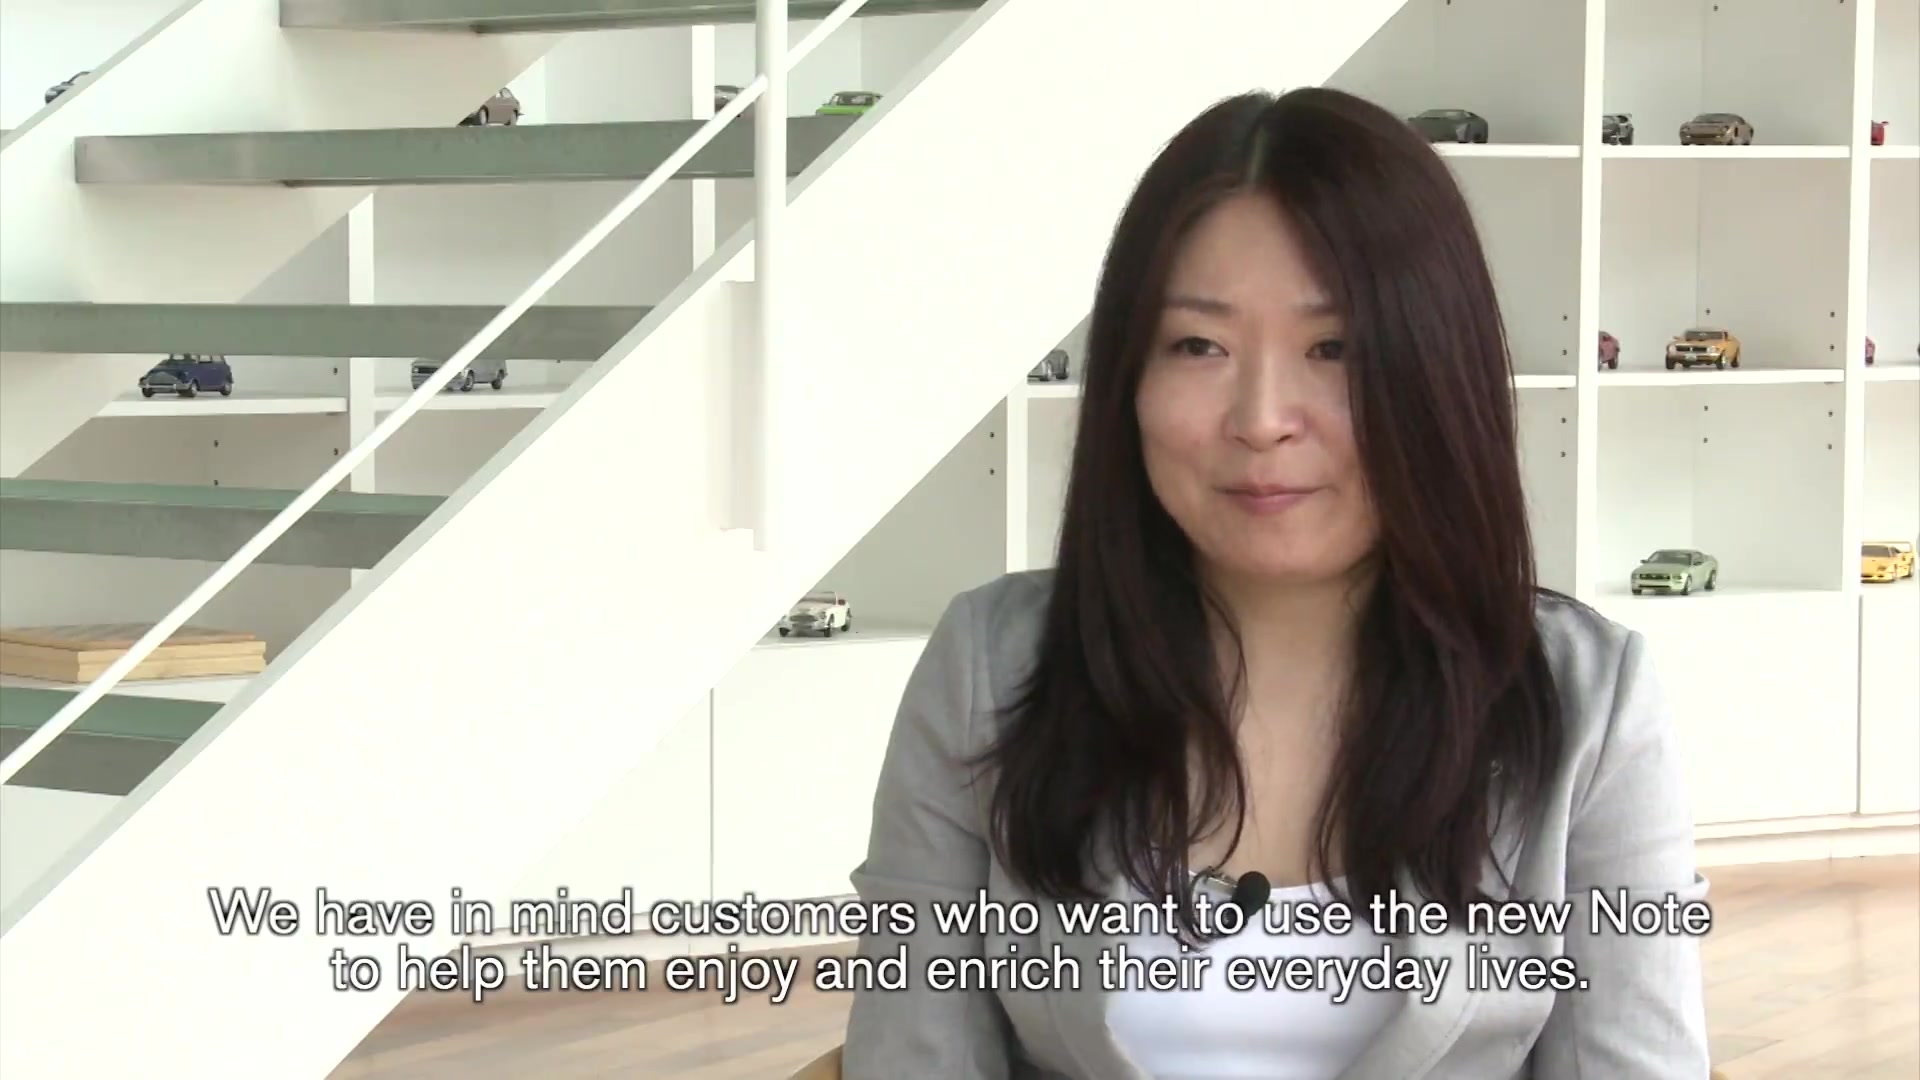 Nissan Chief Product Specialist Mie Minakuchi on the new Note